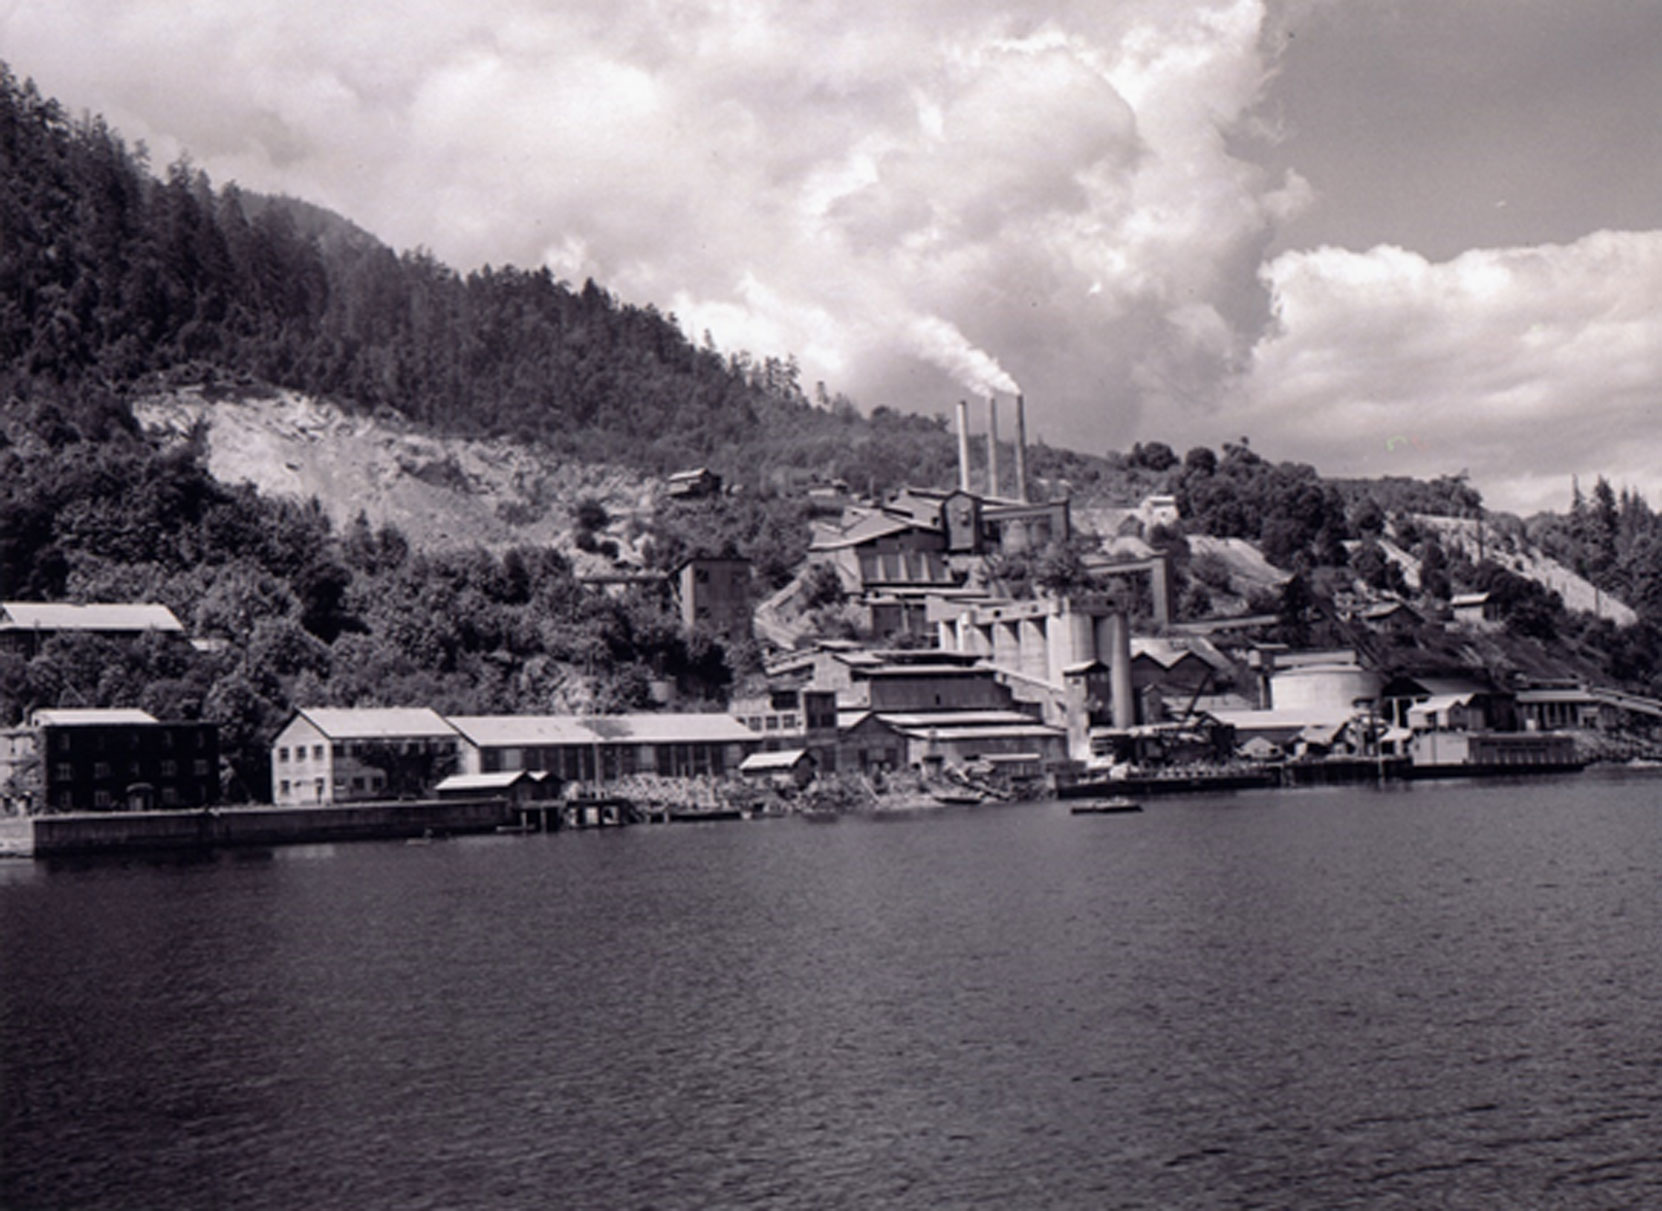 The Bamberton cement factory, viewed from the south east, circa 1946. This photo was released by the British Columbia Cement Company.